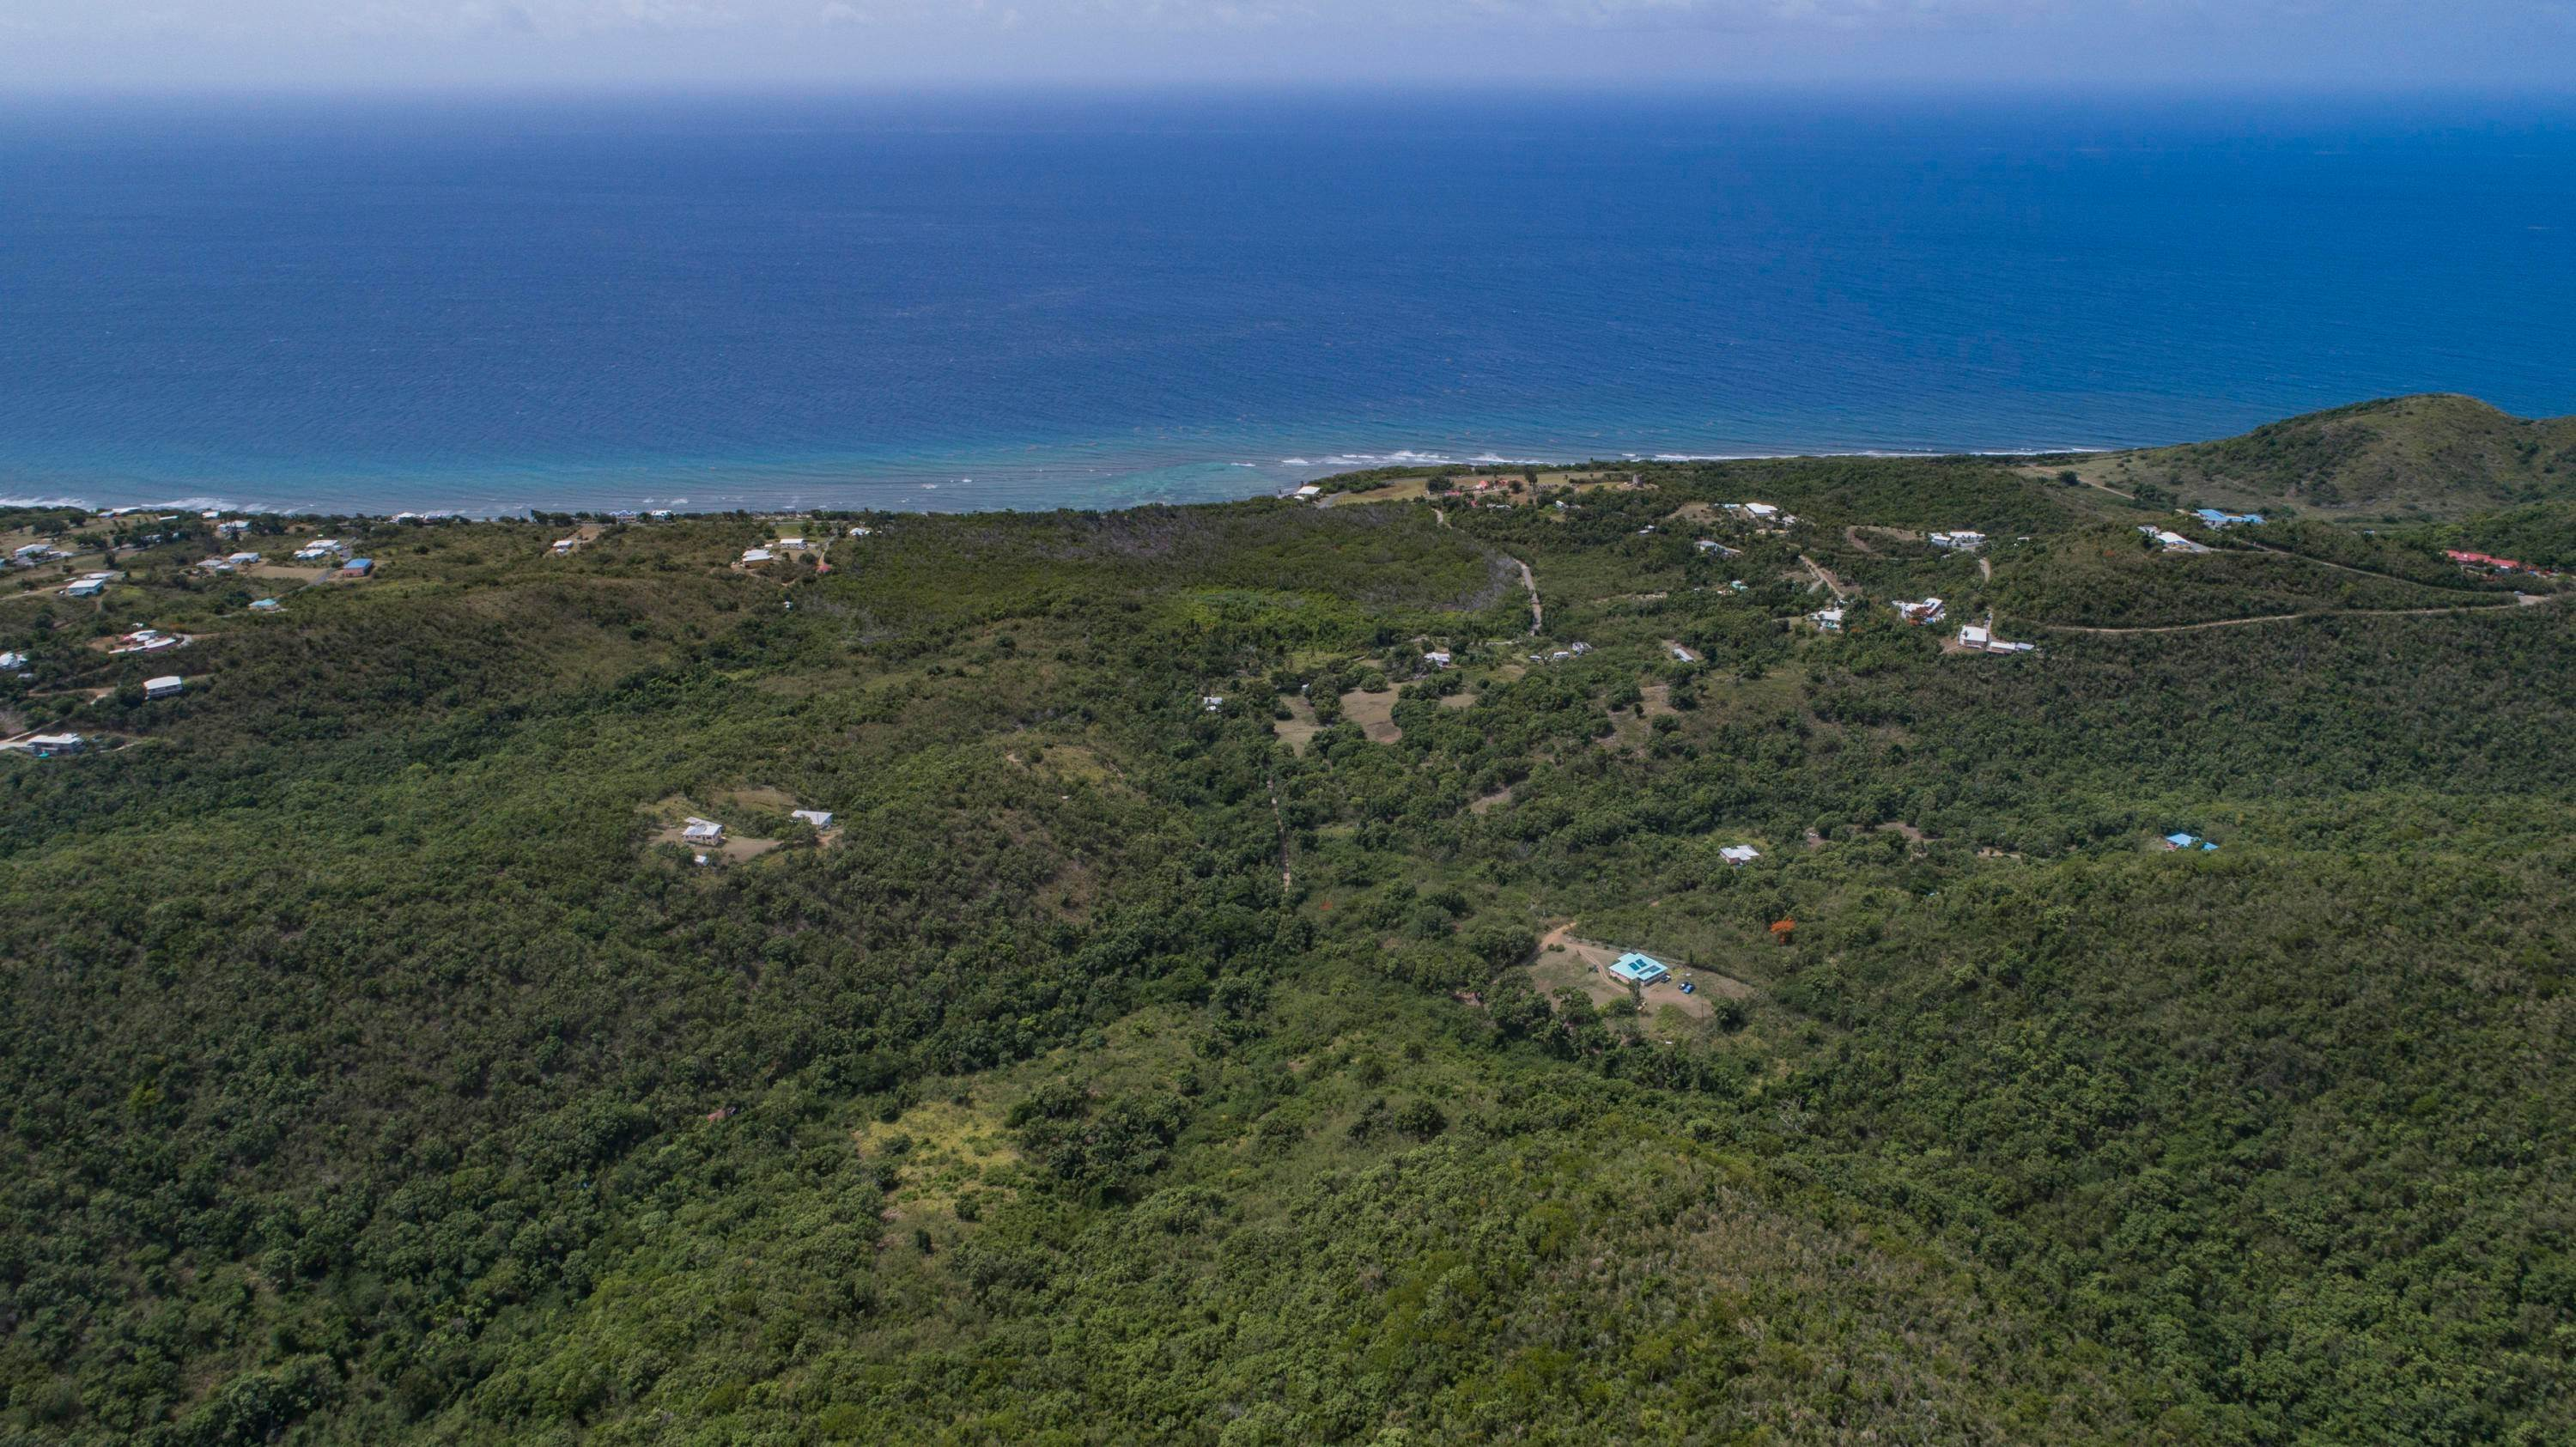 Land for Sale at 12, 14 Mt. Pleasant NB St Croix, Virgin Islands 00820 United States Virgin Islands